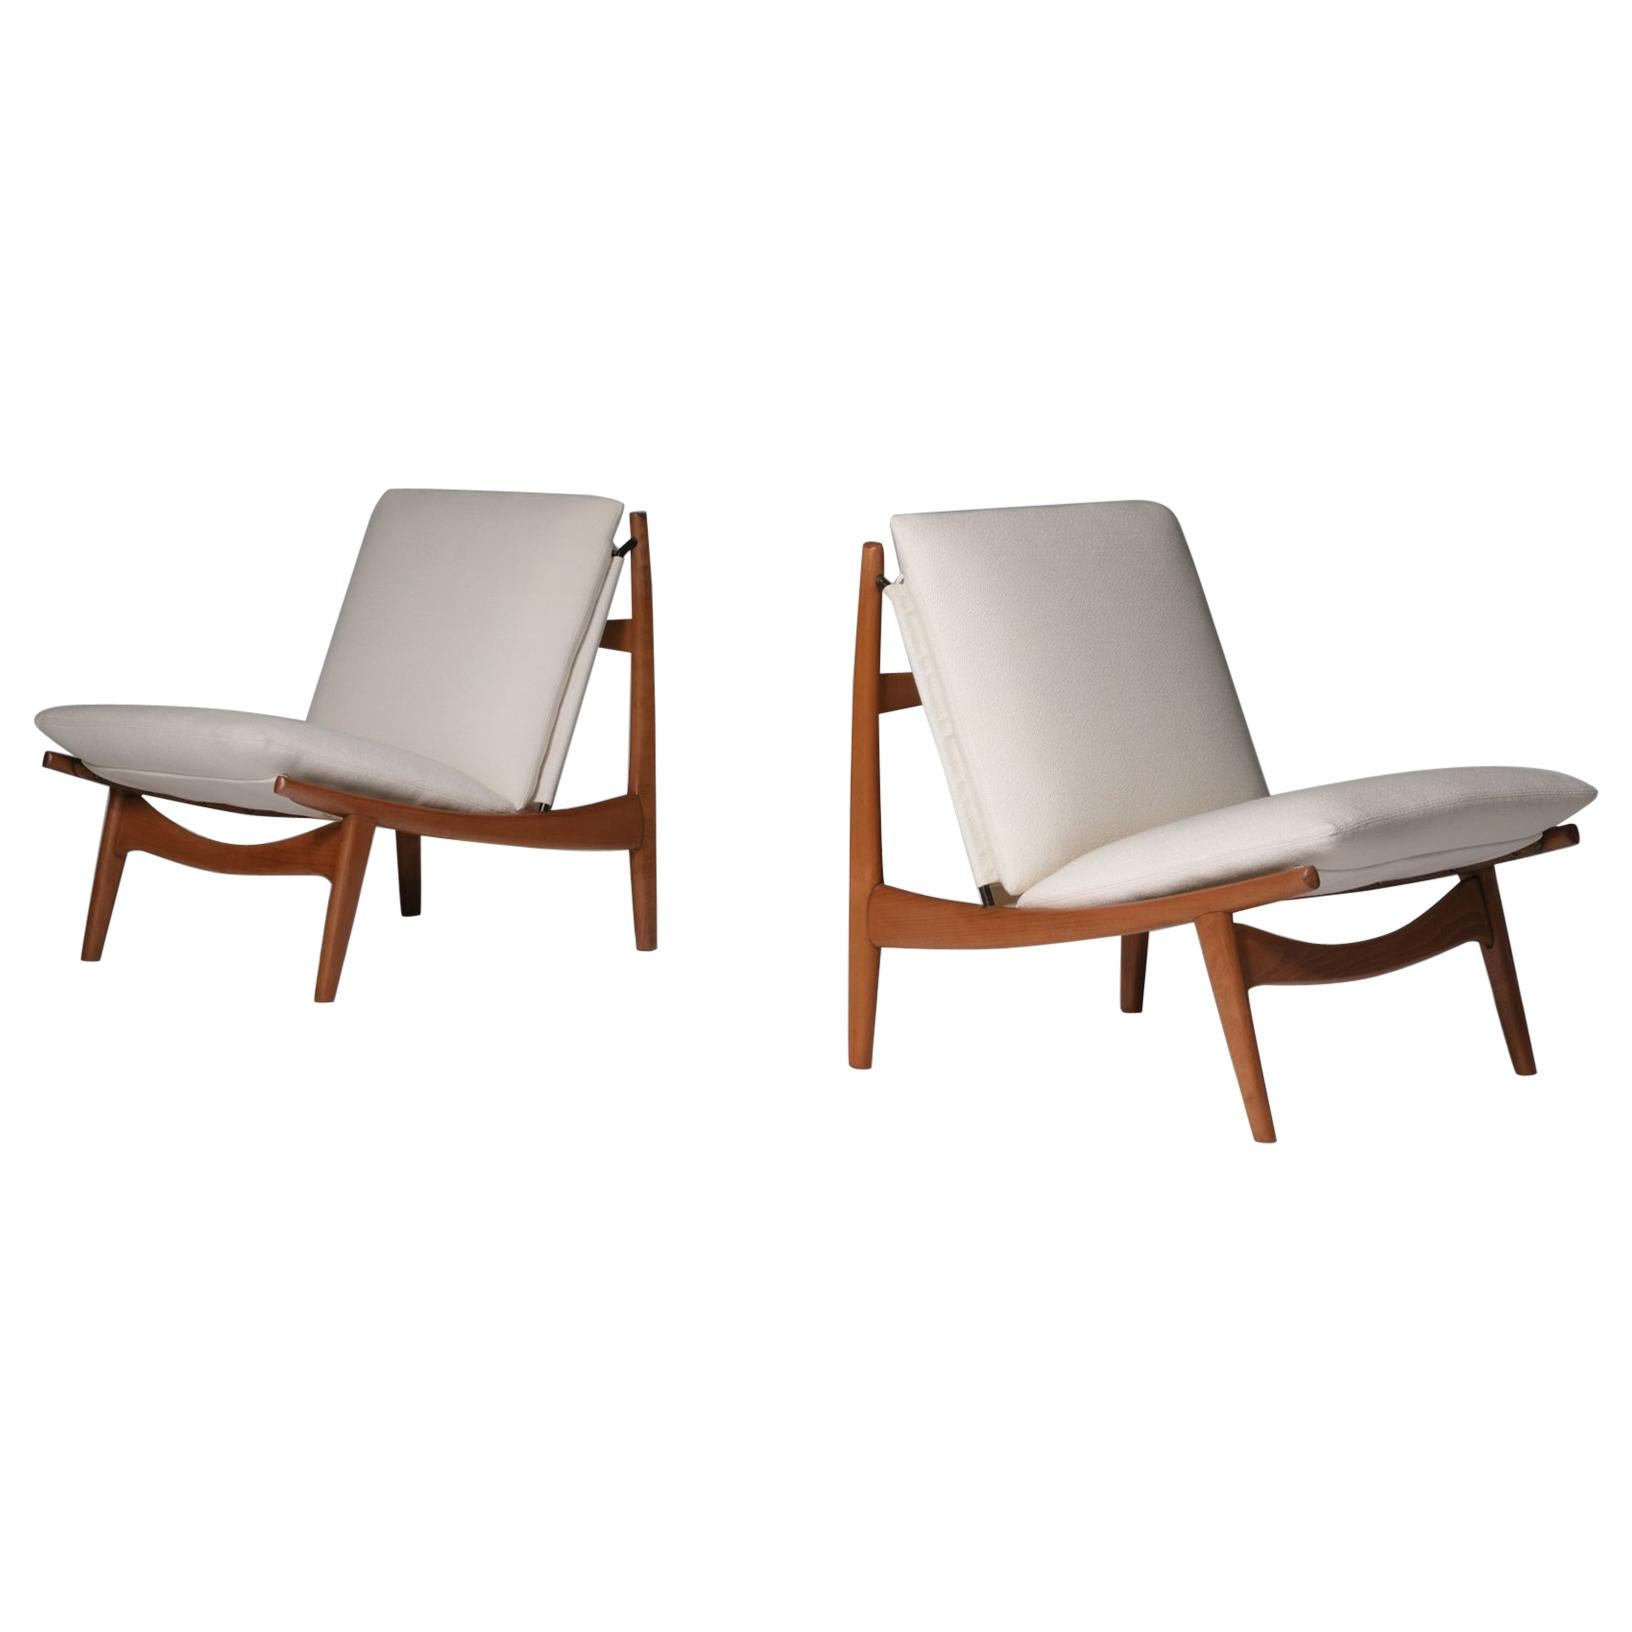 Joseph-André Motte '790' chairs for Steiner, France, 1963